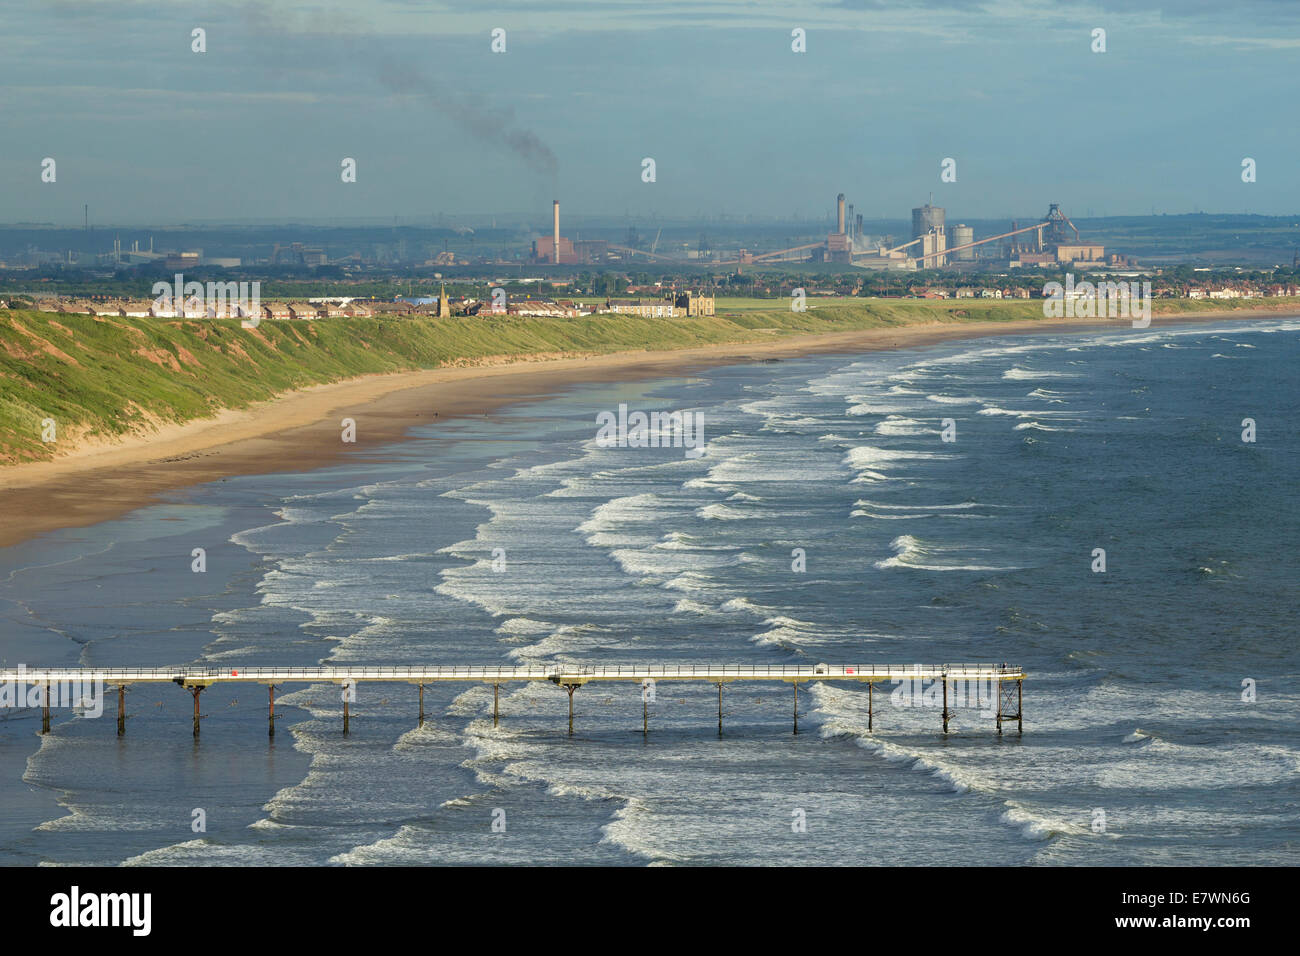 View over Saltburn pier and beach with Redcar Steelworks in distance. Saltburn by the Sea, North Yorkshire, England, Stock Photo